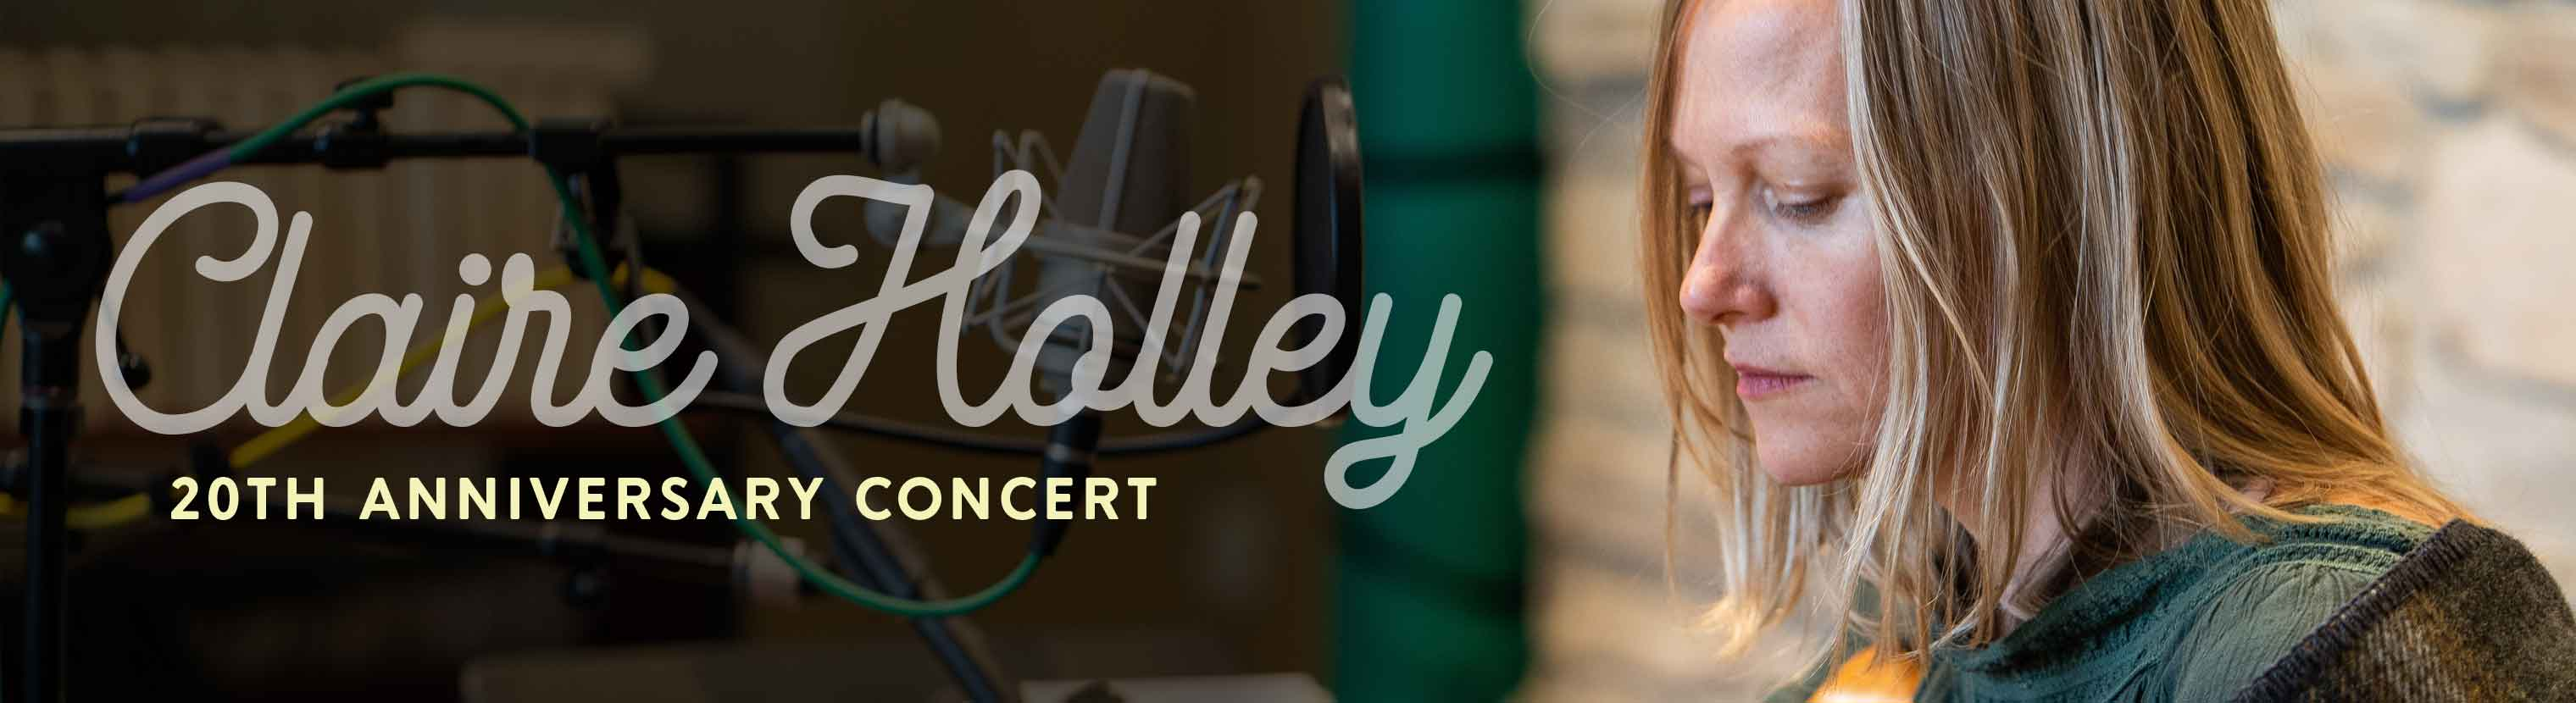 Claire Holley 20th Anniversary Concert